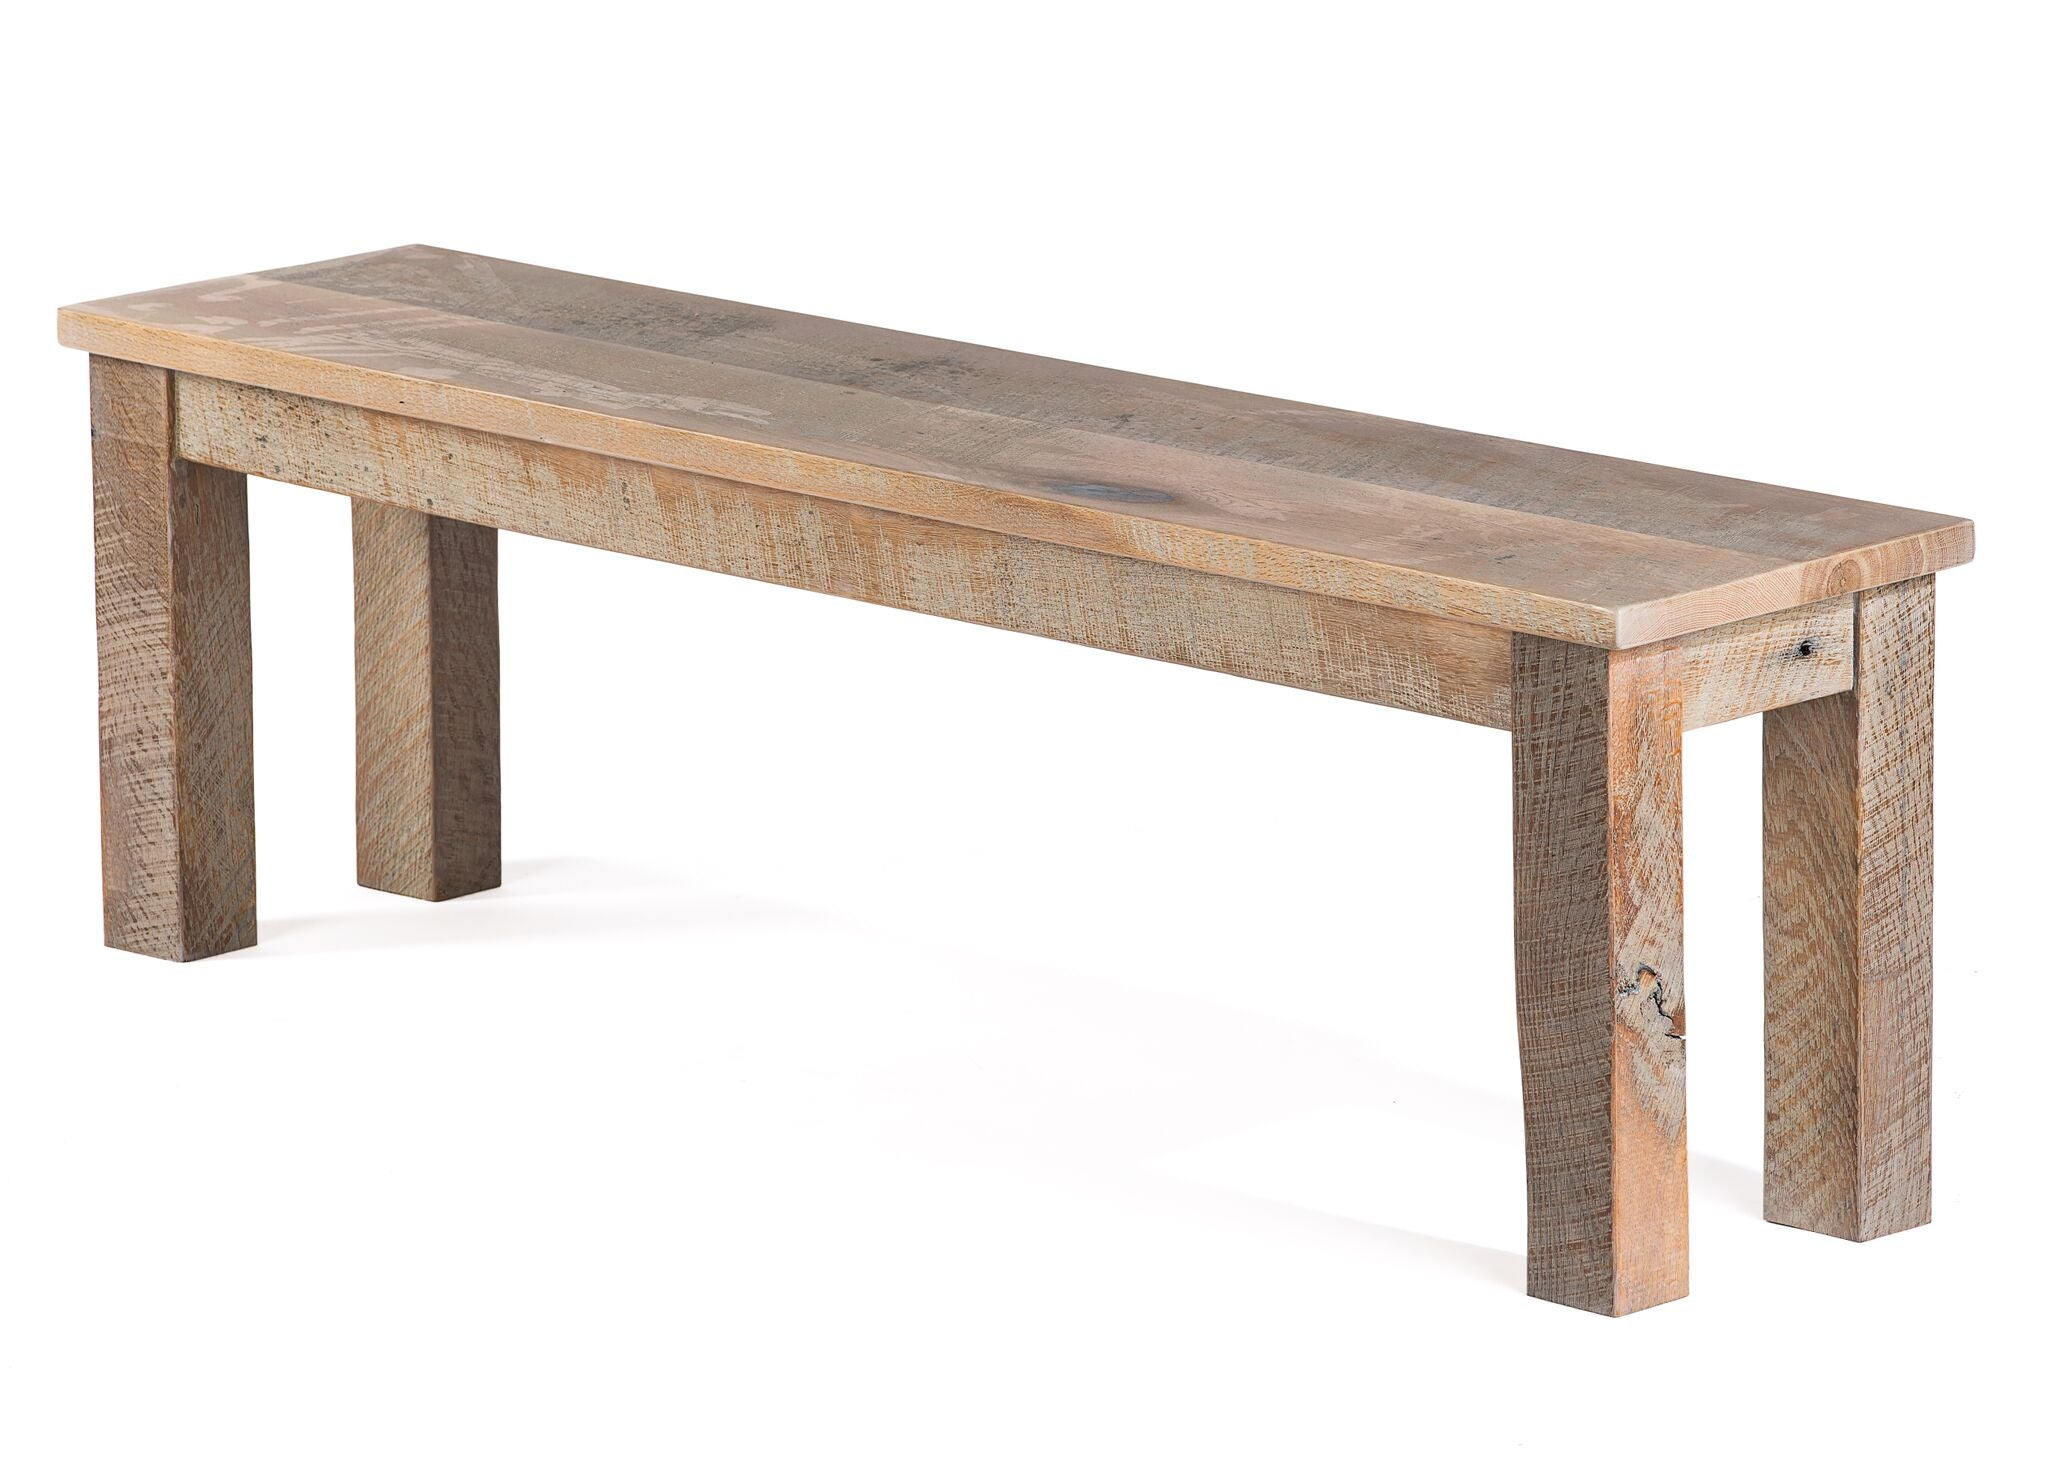 "Wood Benches | Farmhouse Bench | Natural Reclaimed Oak | 60"" LENGTH14"" WIDTH 18"" HEIGHT kingston-krafts-zinc-tables."